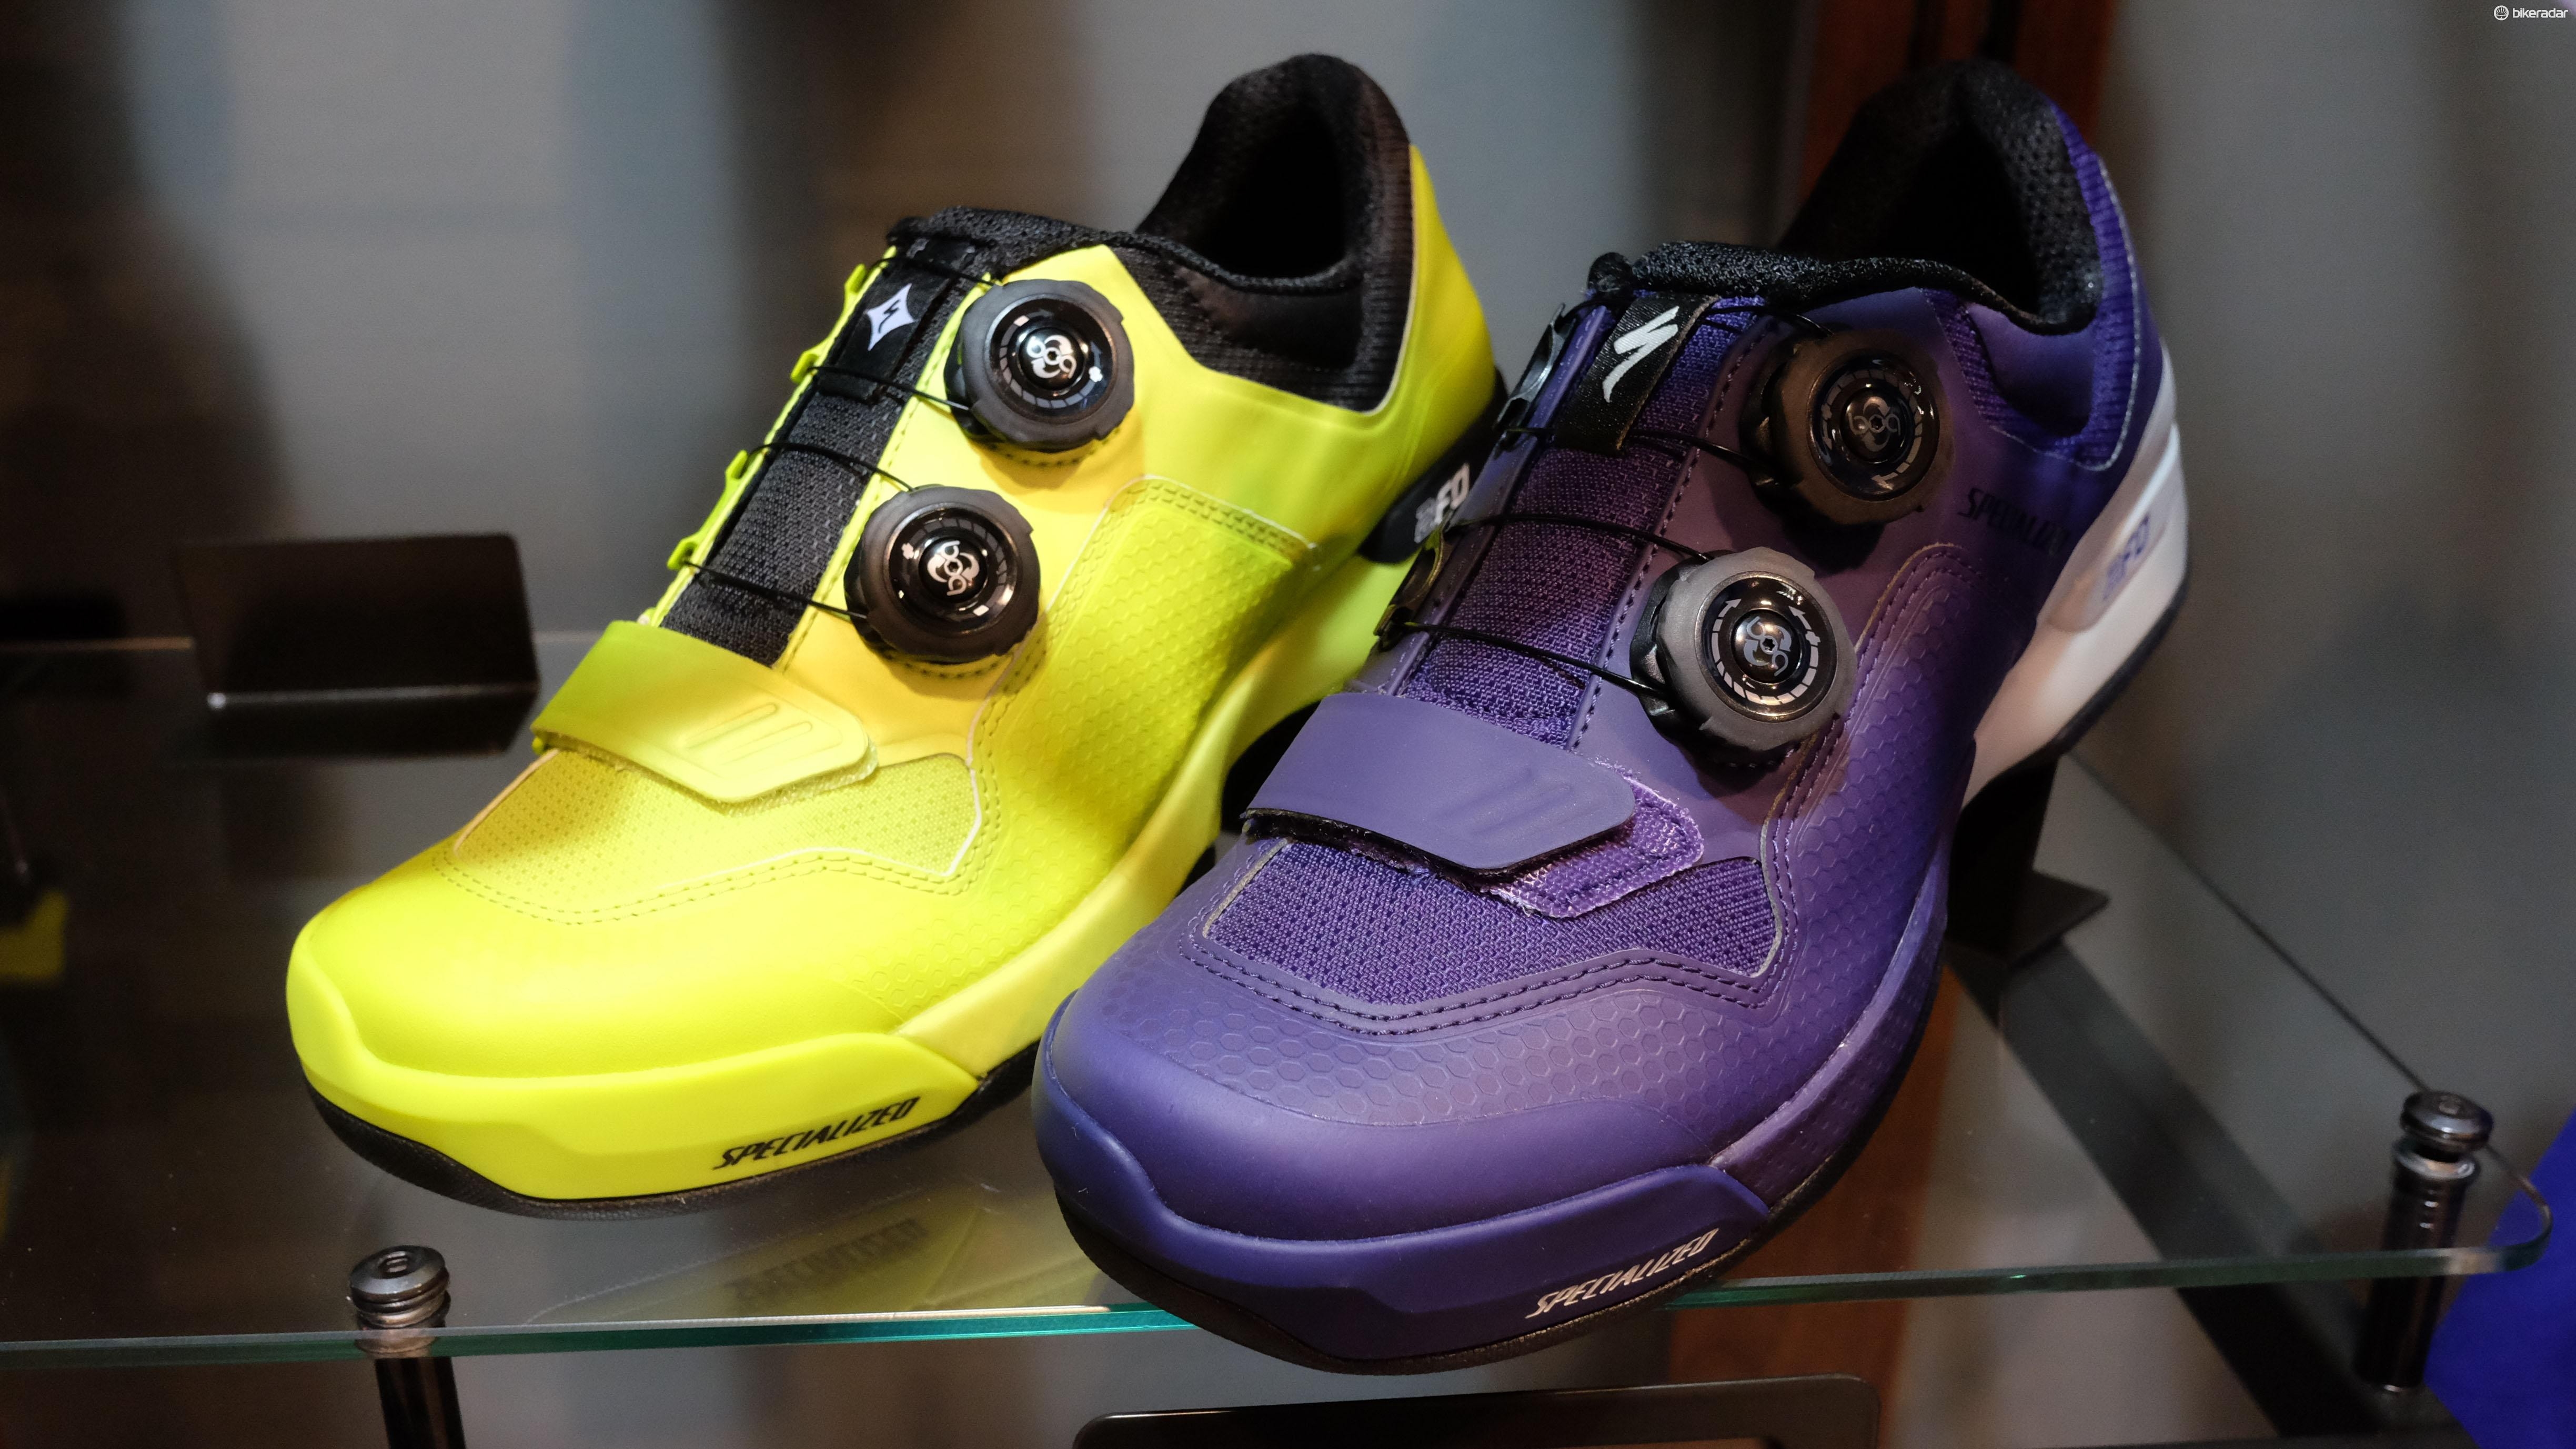 New colours for the 2FO Cliplite MTB shoes